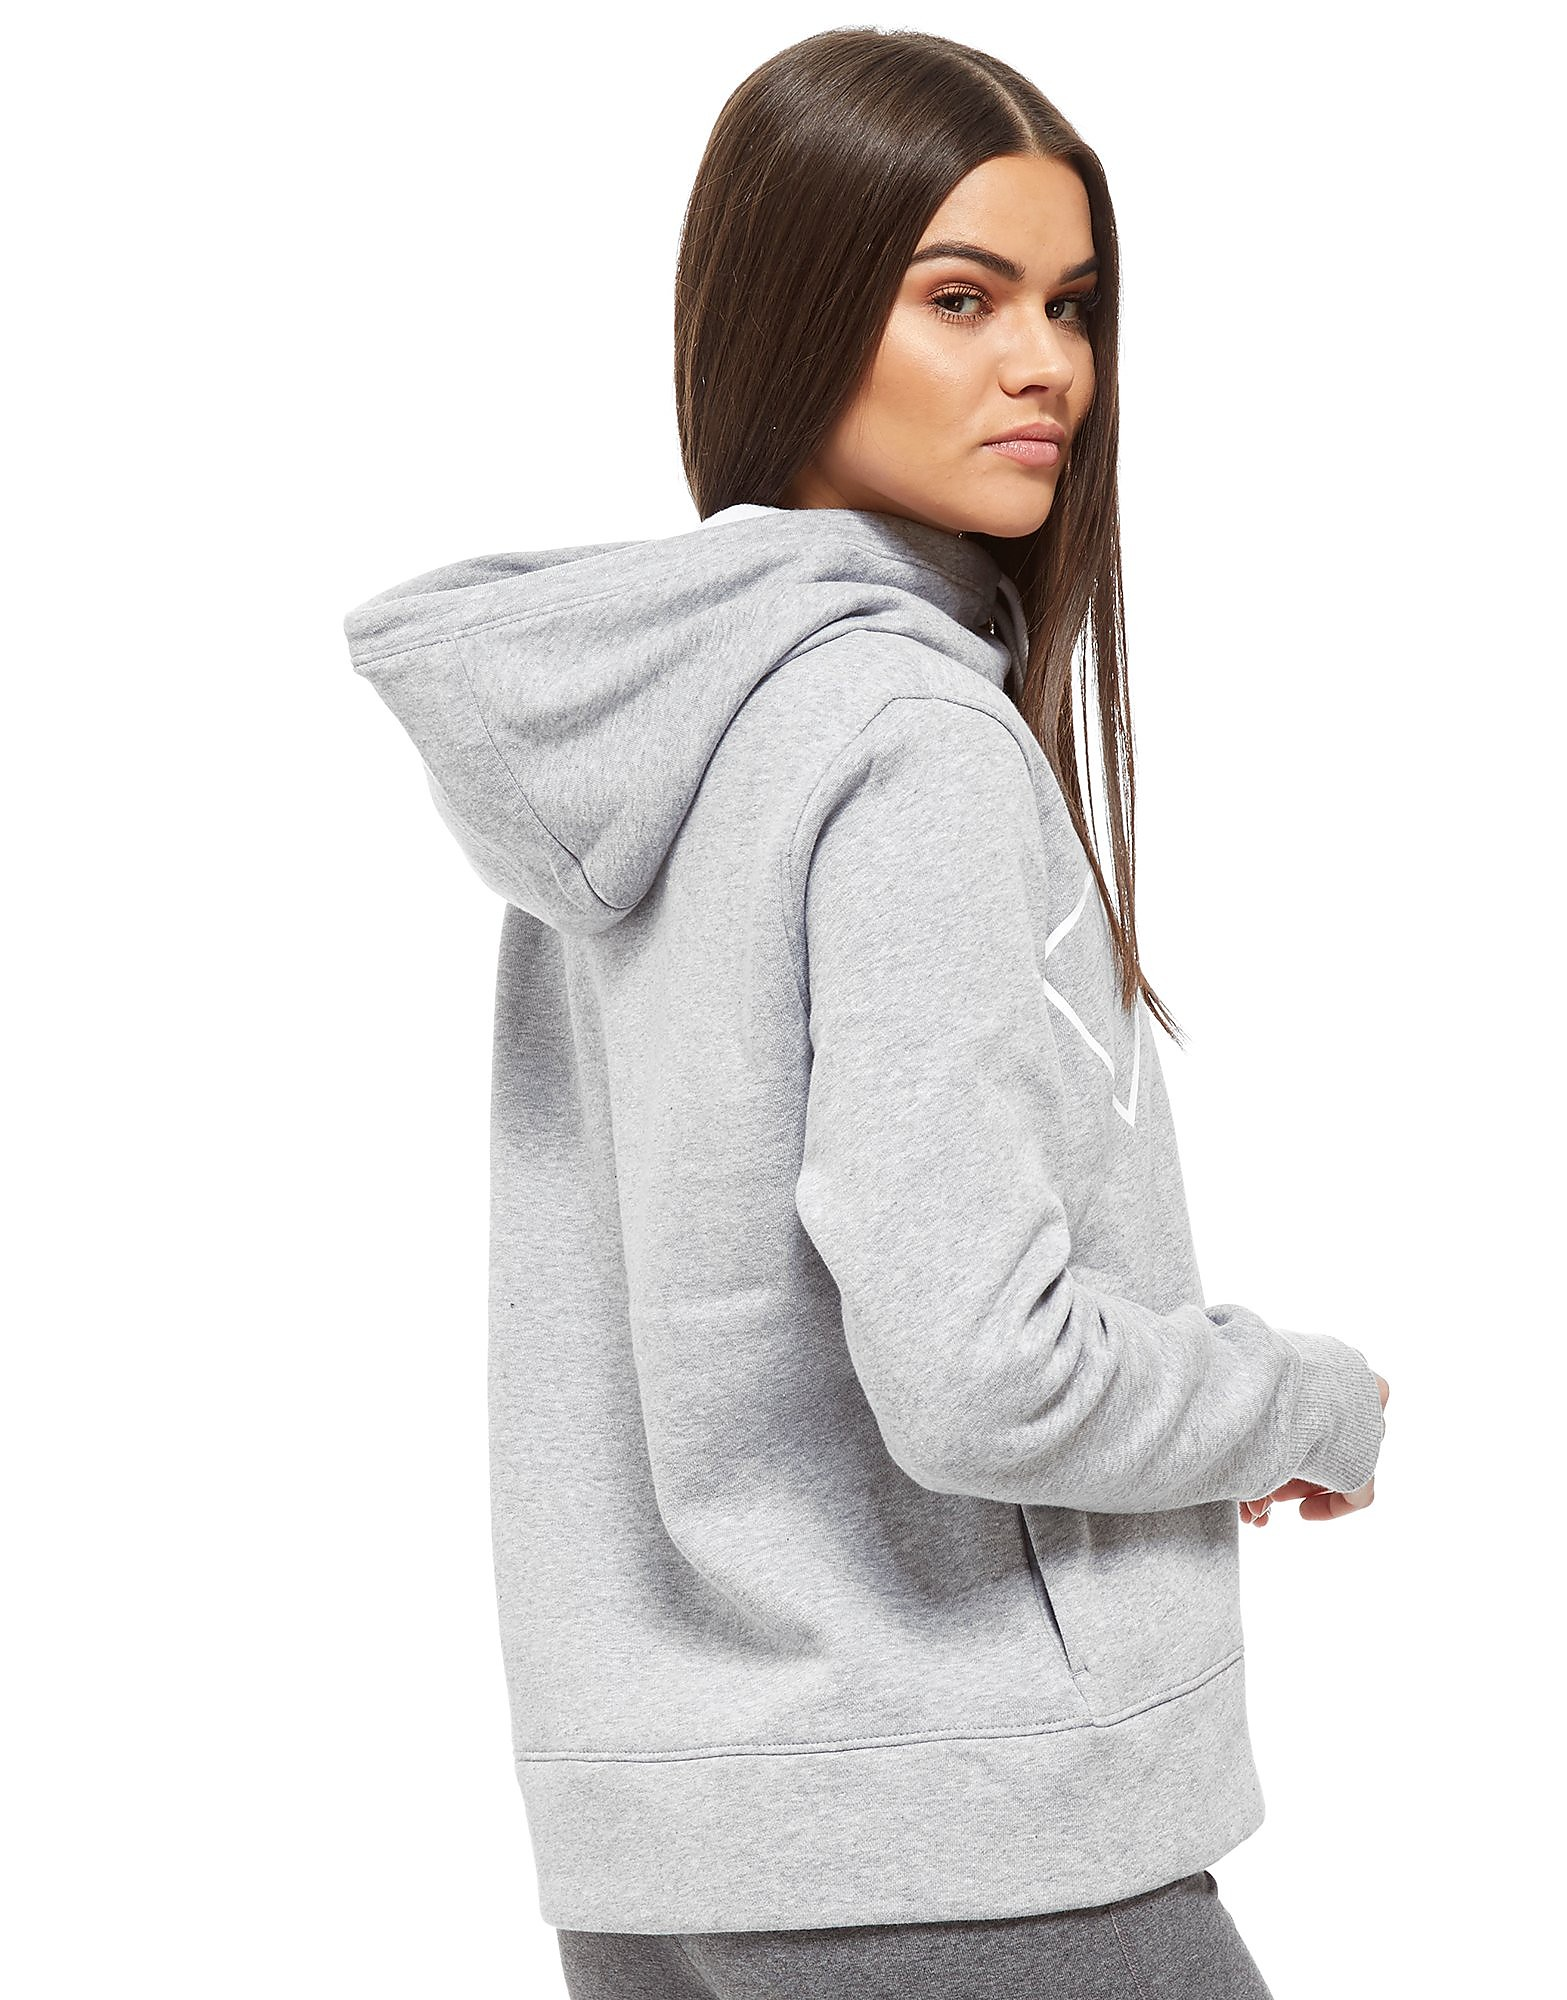 Under Armour Graphic Overhead Women's Hooded Top